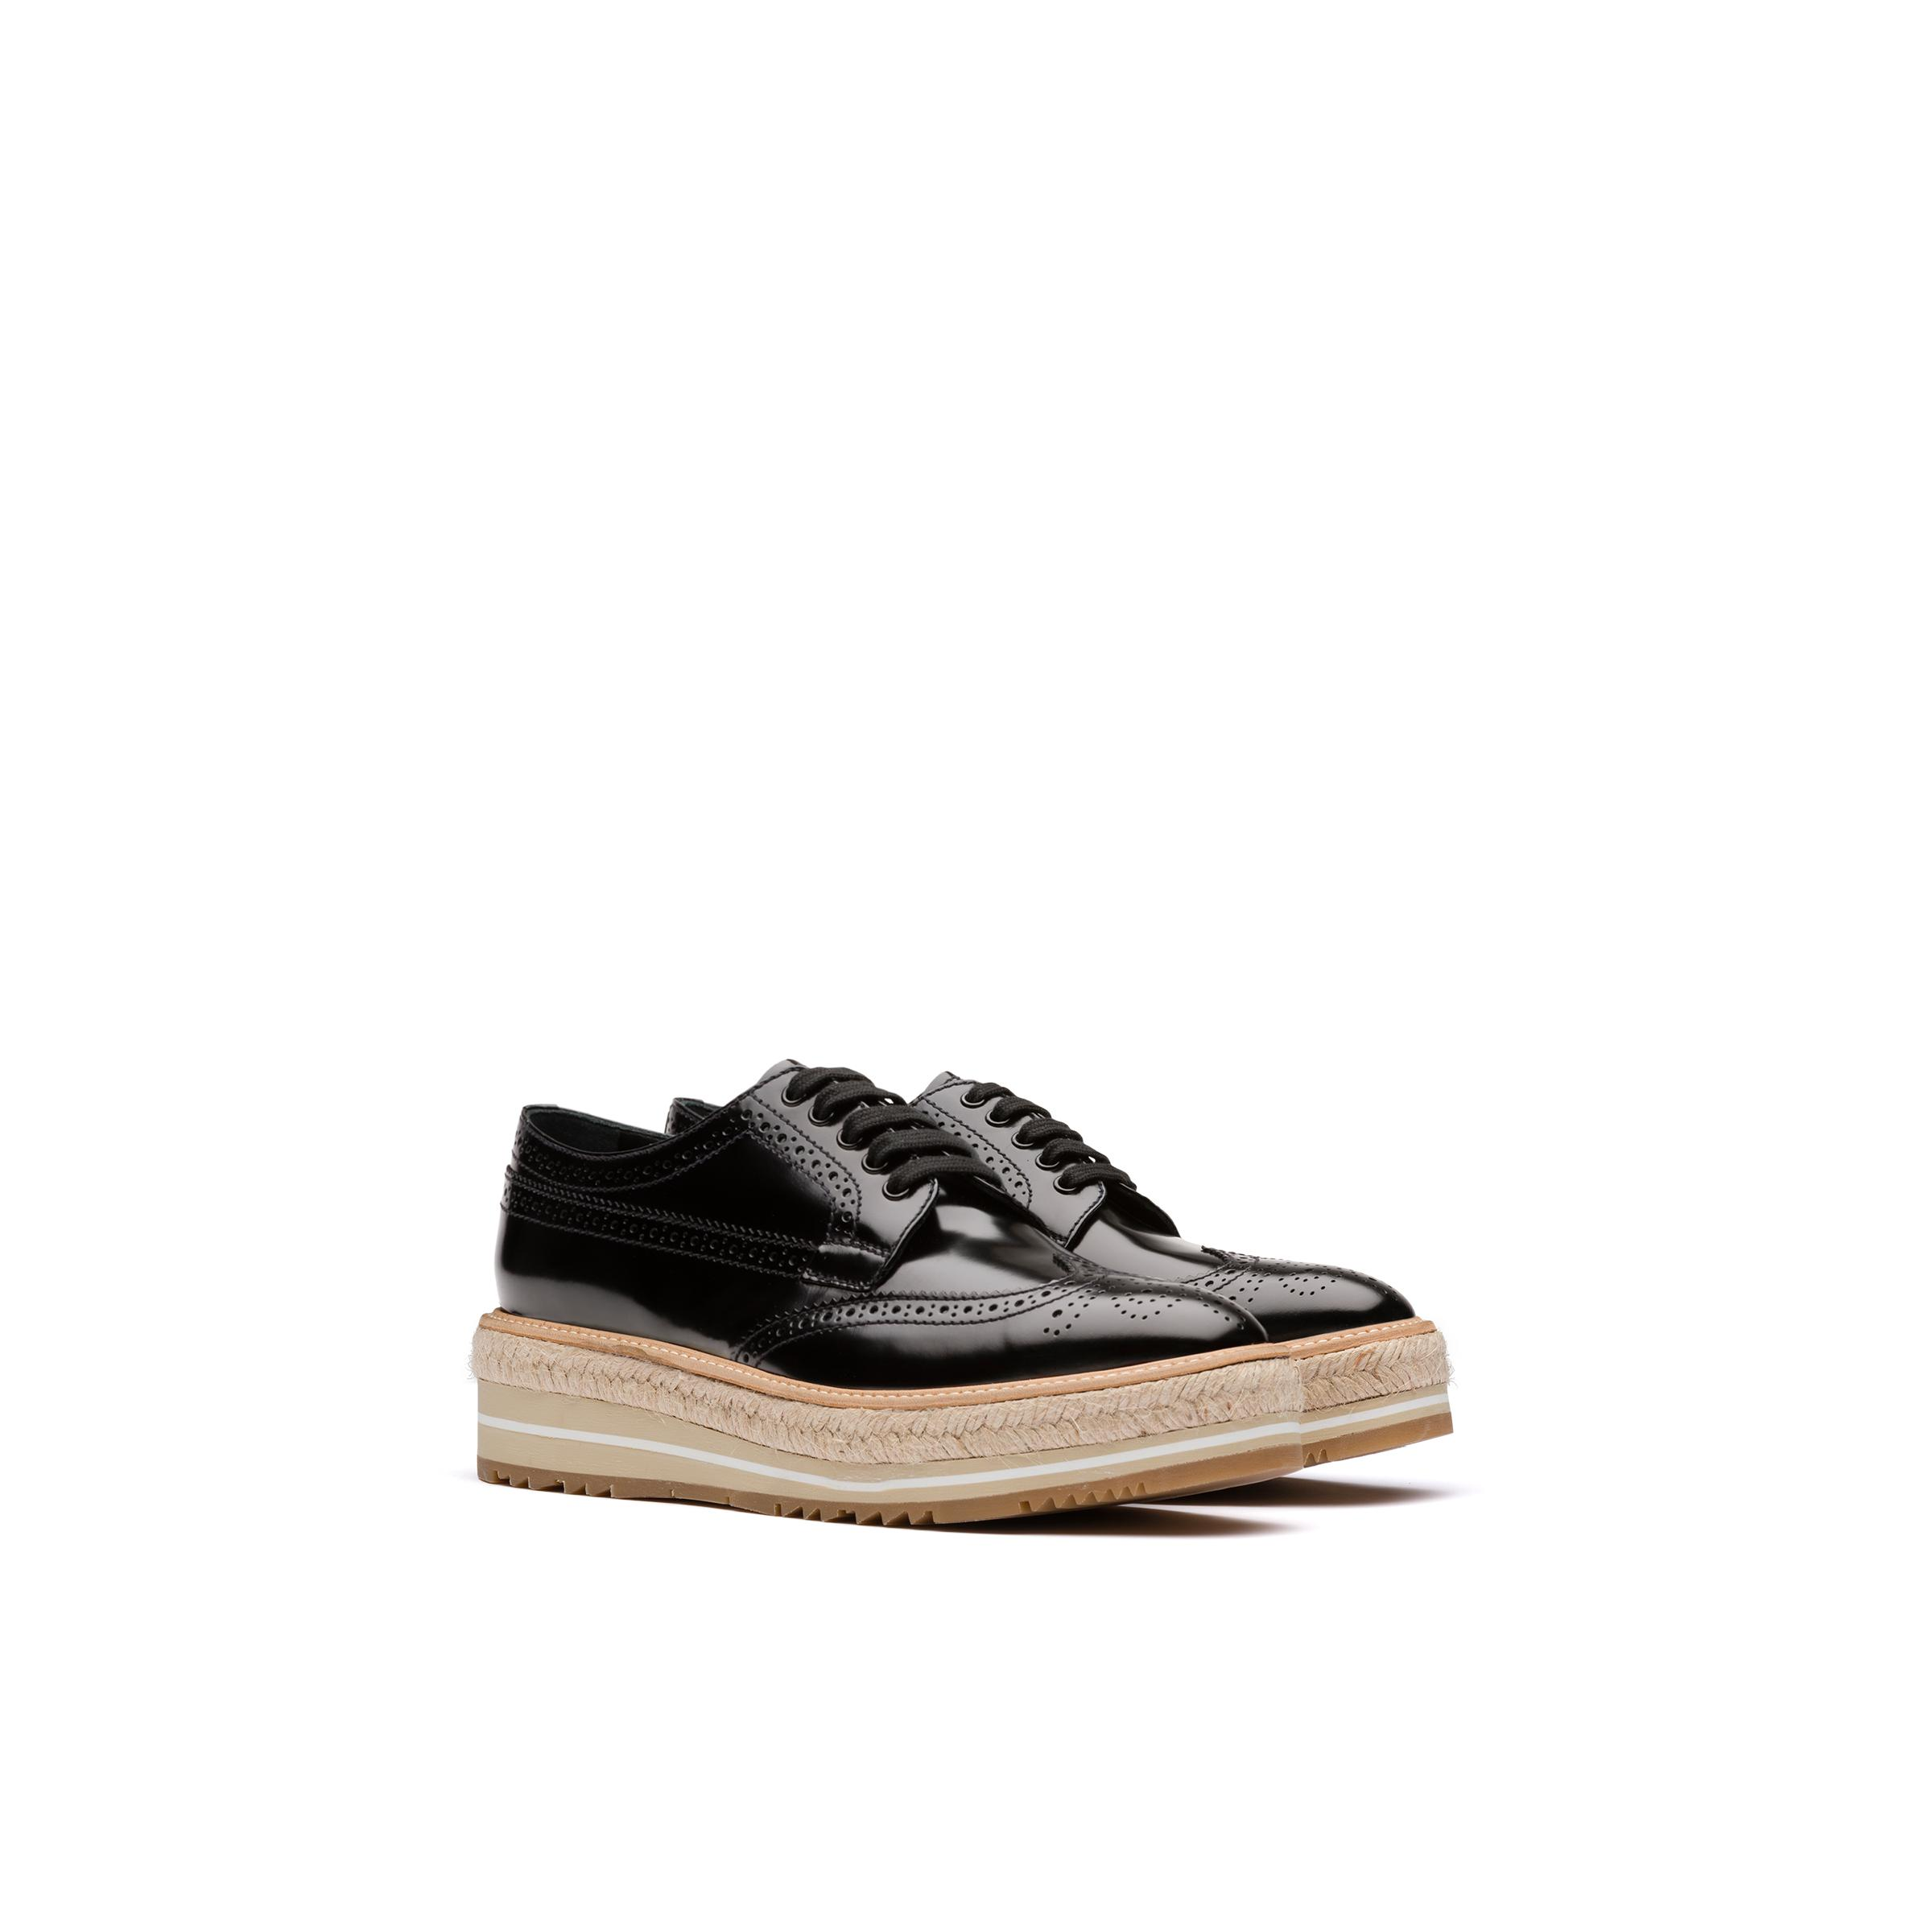 Microsole Brushed Leather Shoes Women Black